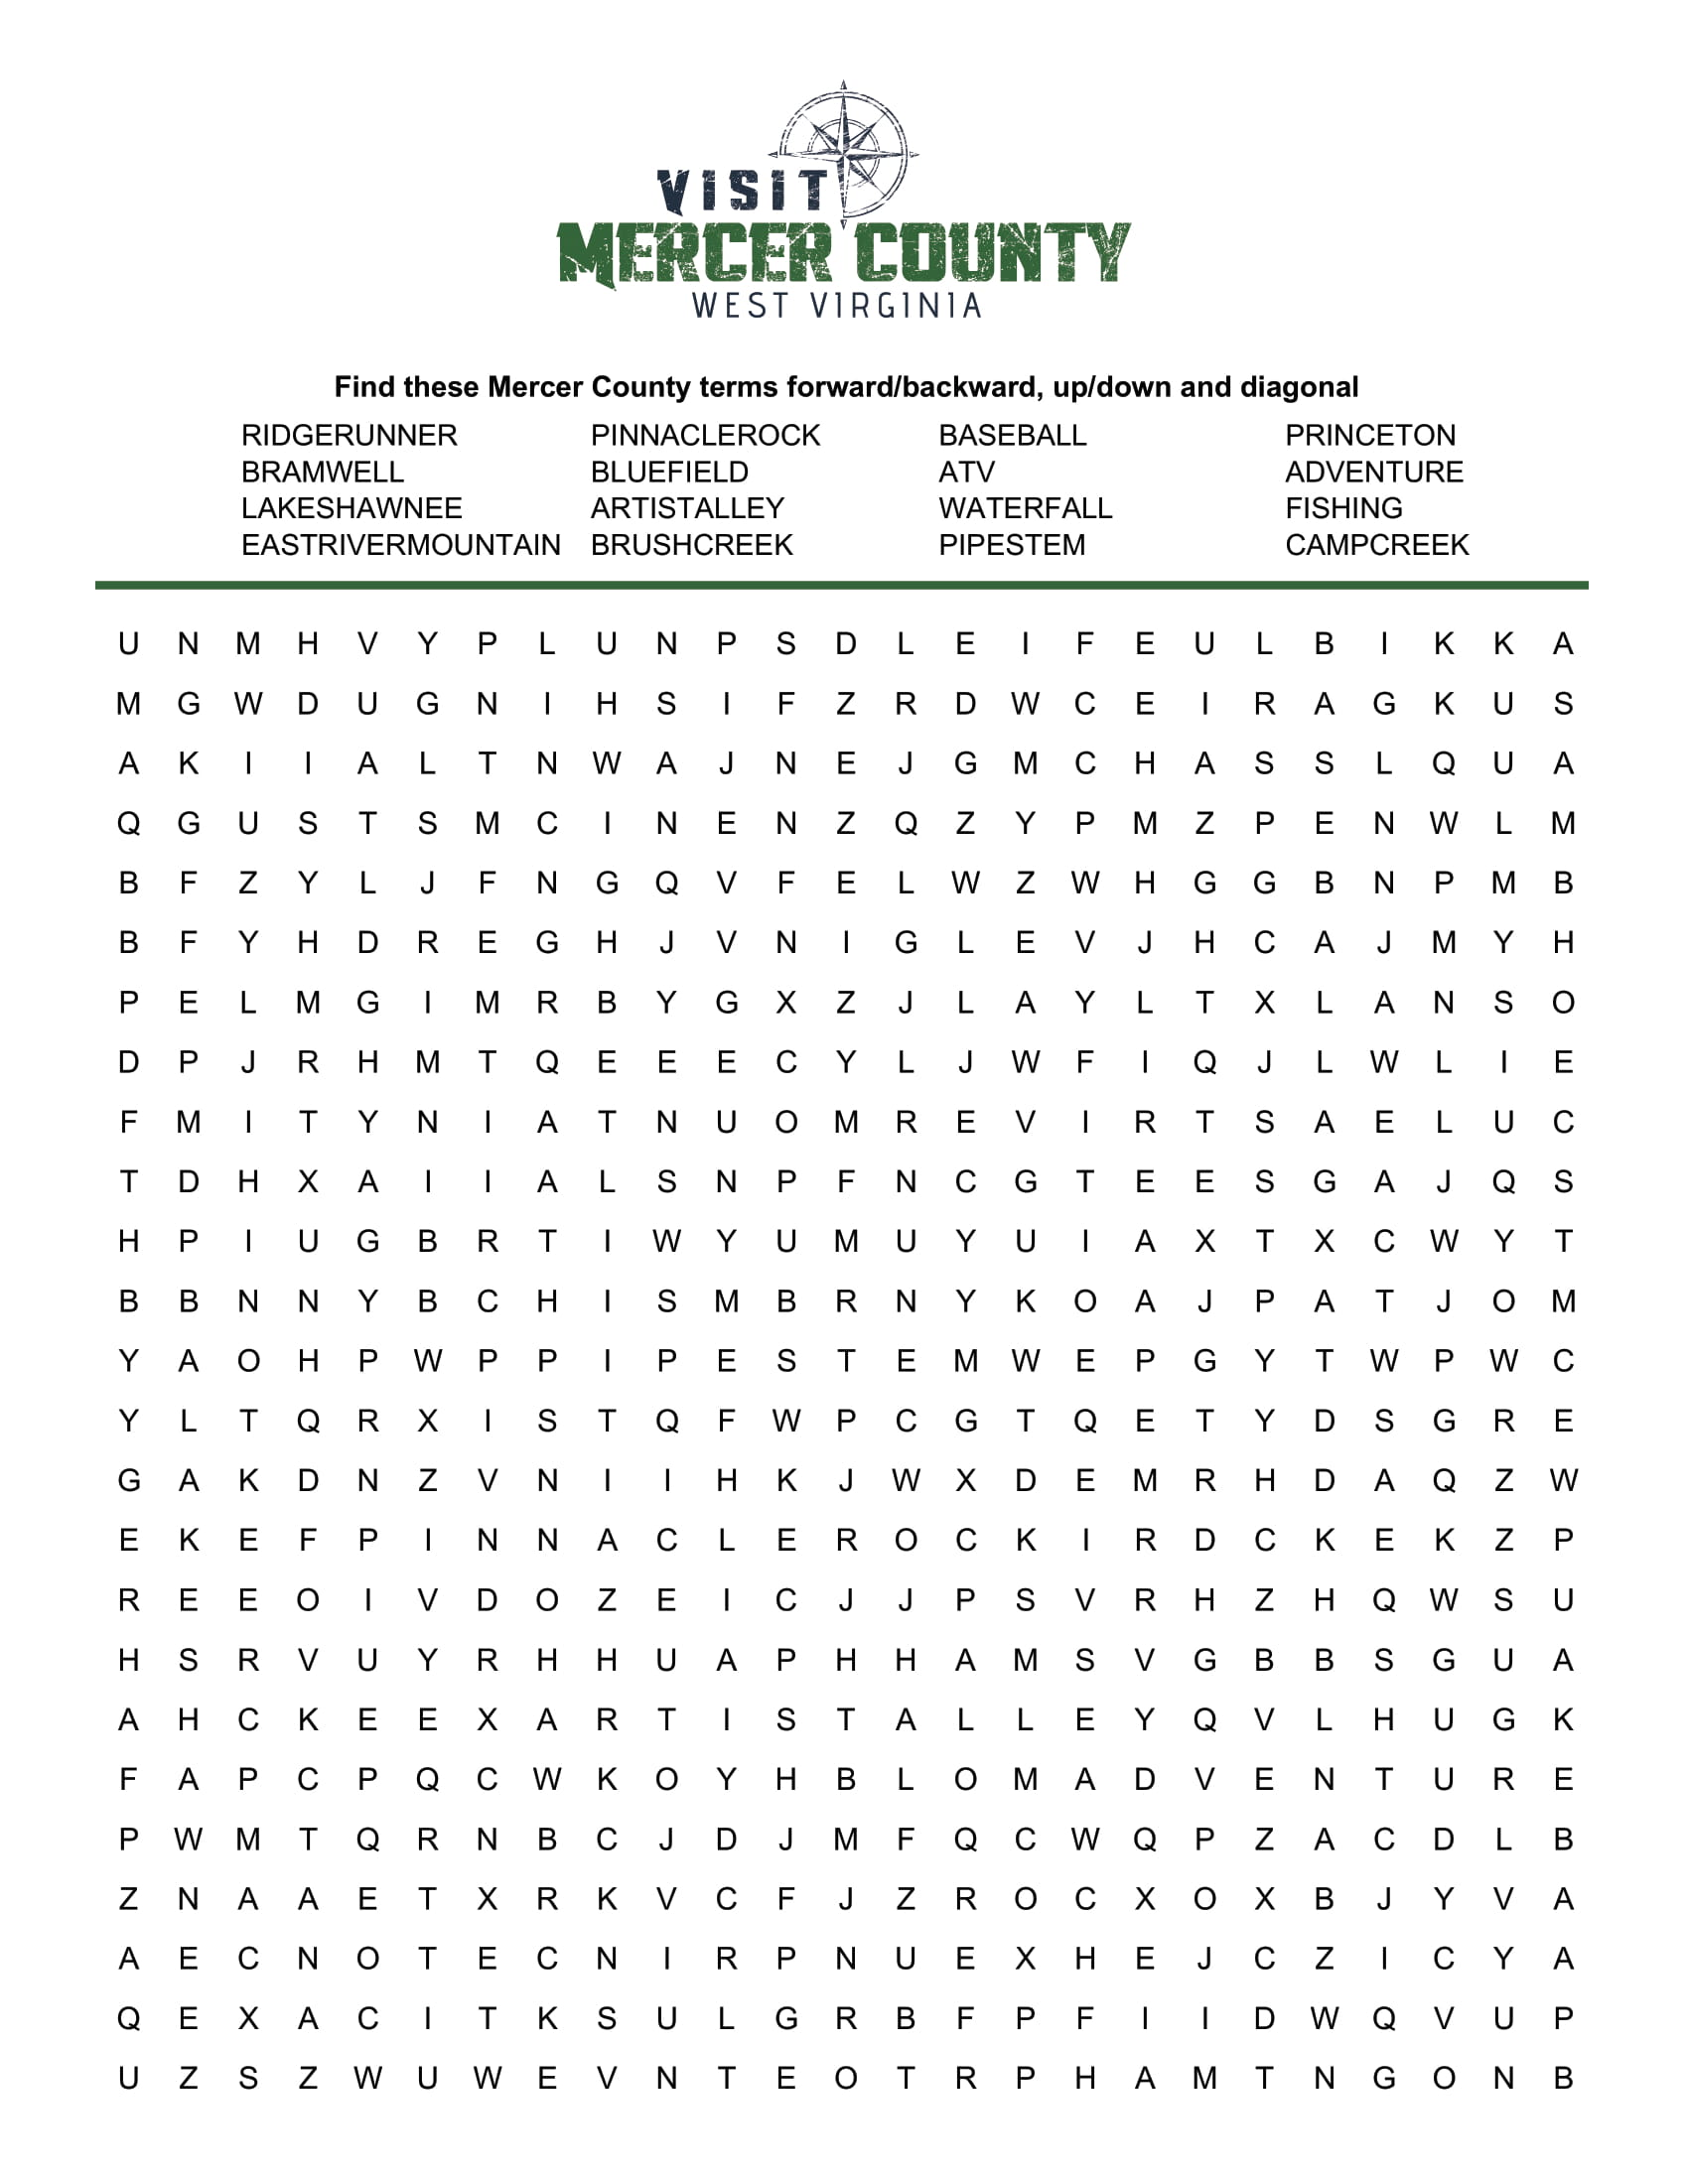 From favorite pastimes to historical places, find them all in our word search